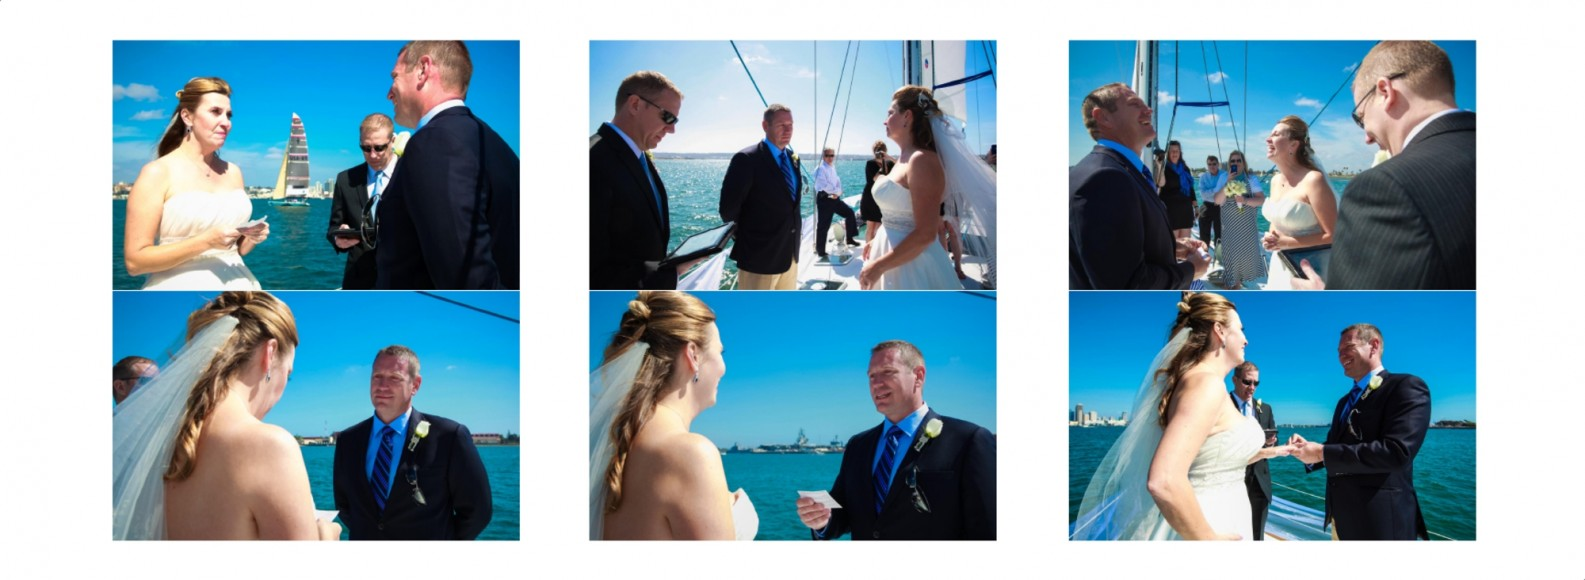 Laura and Davids Wedding Book - San Diego Yacht Wedding by Wedding Photographers Andrew Abouna - Pages 16-17